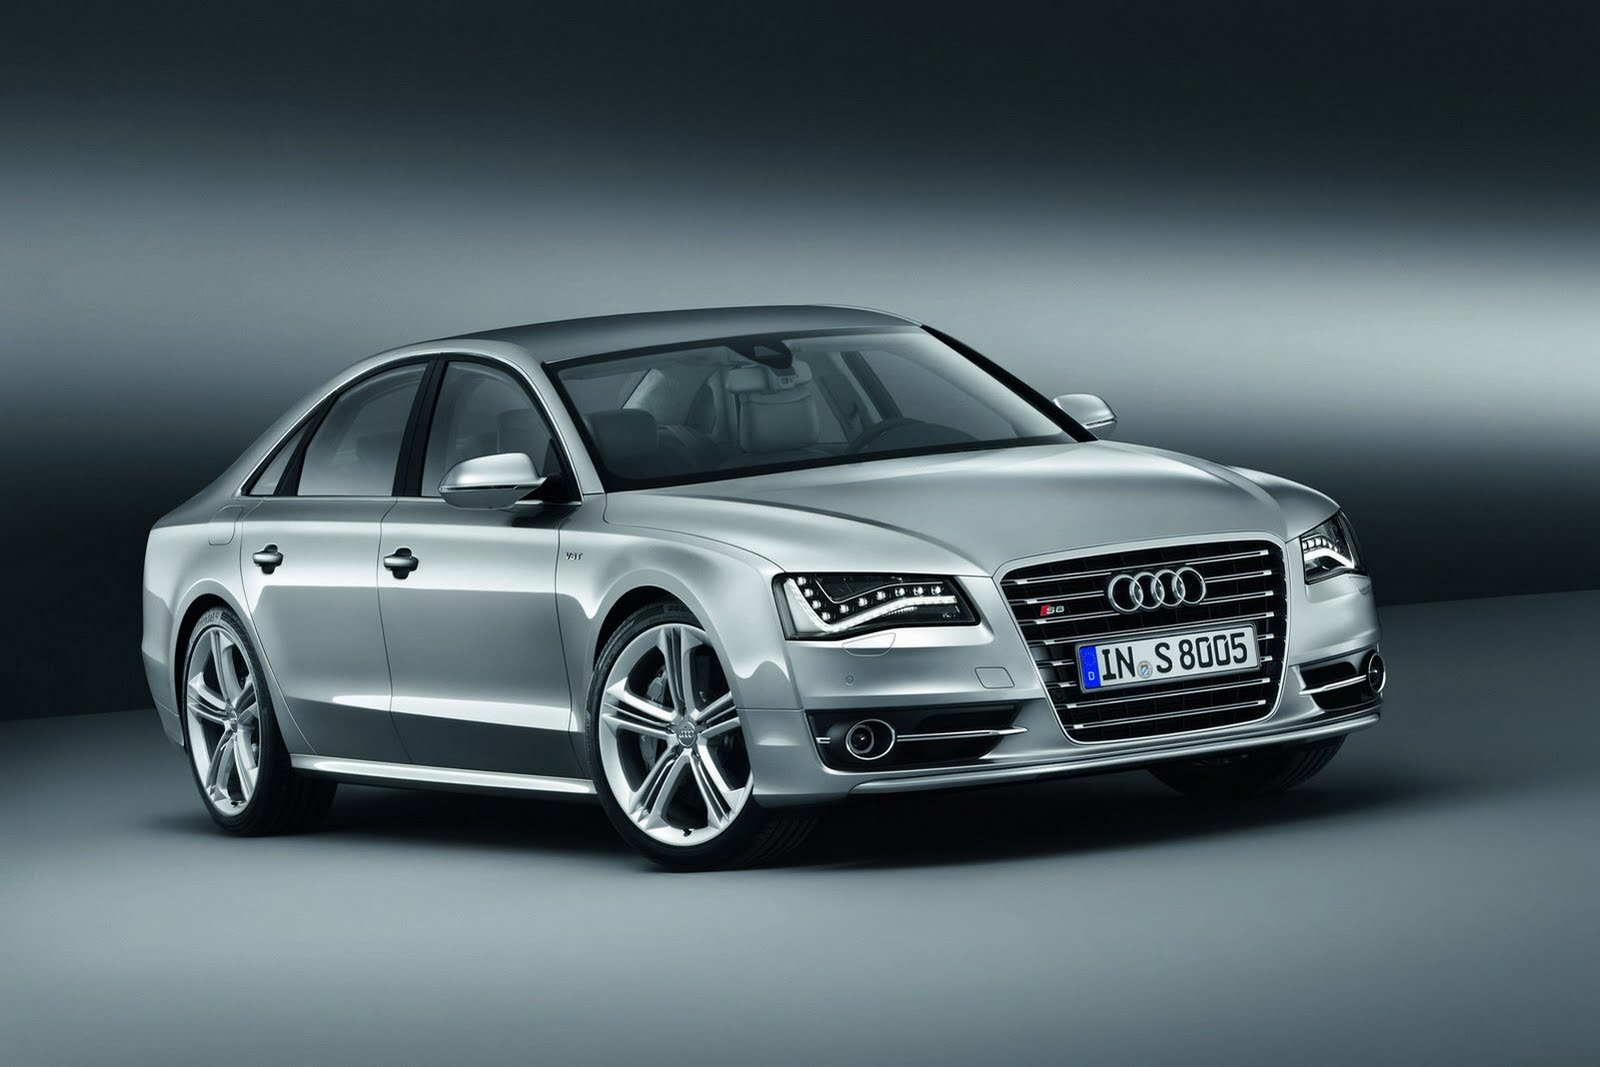 2013 audi s8 AUDI UNVEILS NEW 2013 S8 WITH 4.0 LITER TWIN TURBO V8 AND 520 HORSES